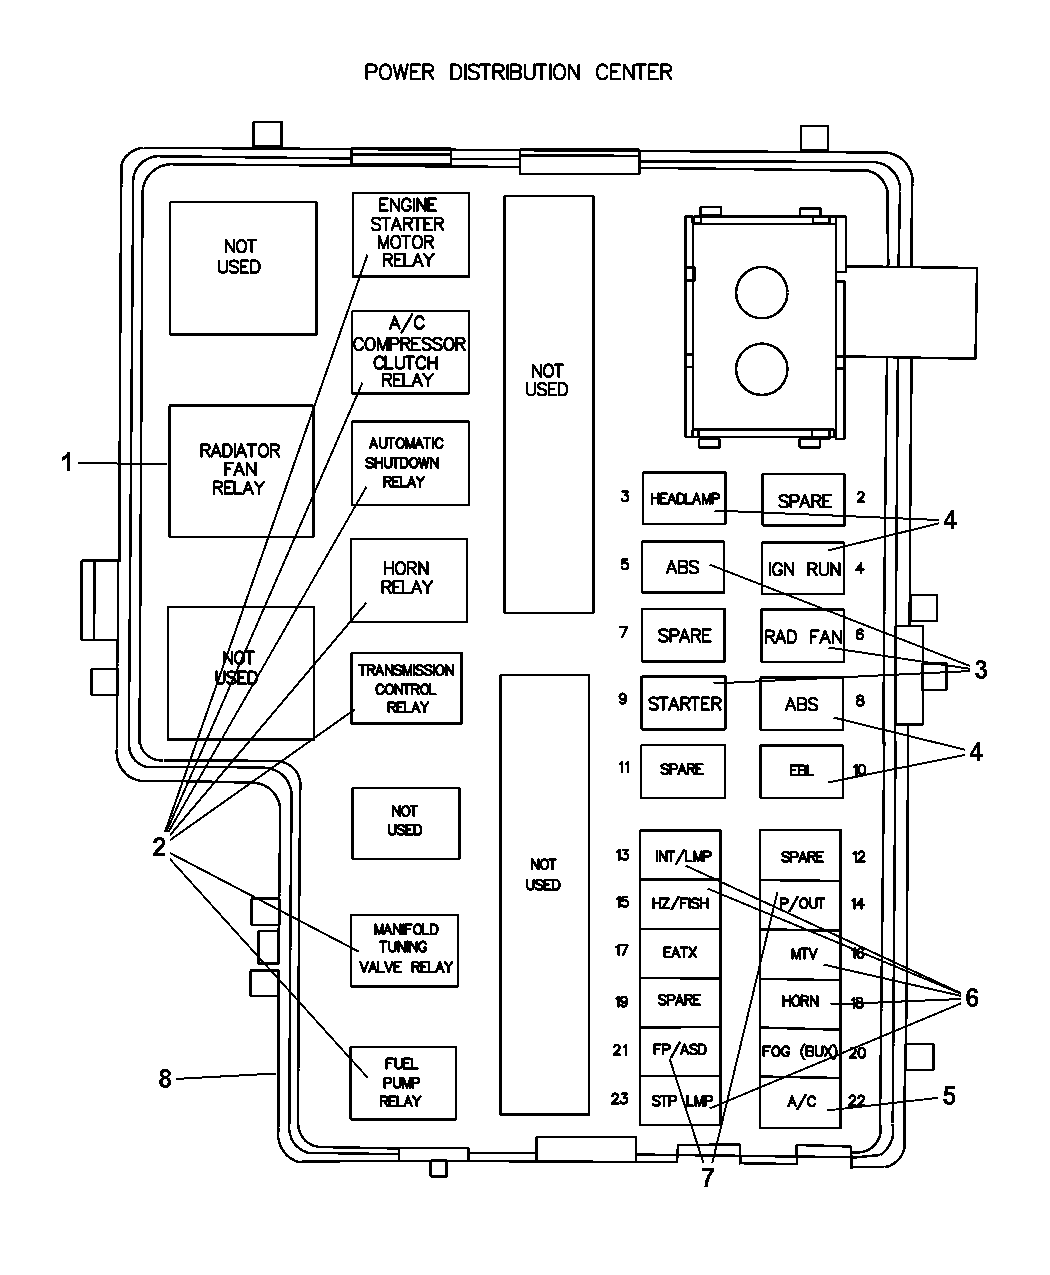 1996 dodge dakota fuse box 96 neon fuse box wiring diagrams site  96 neon fuse box wiring diagrams site